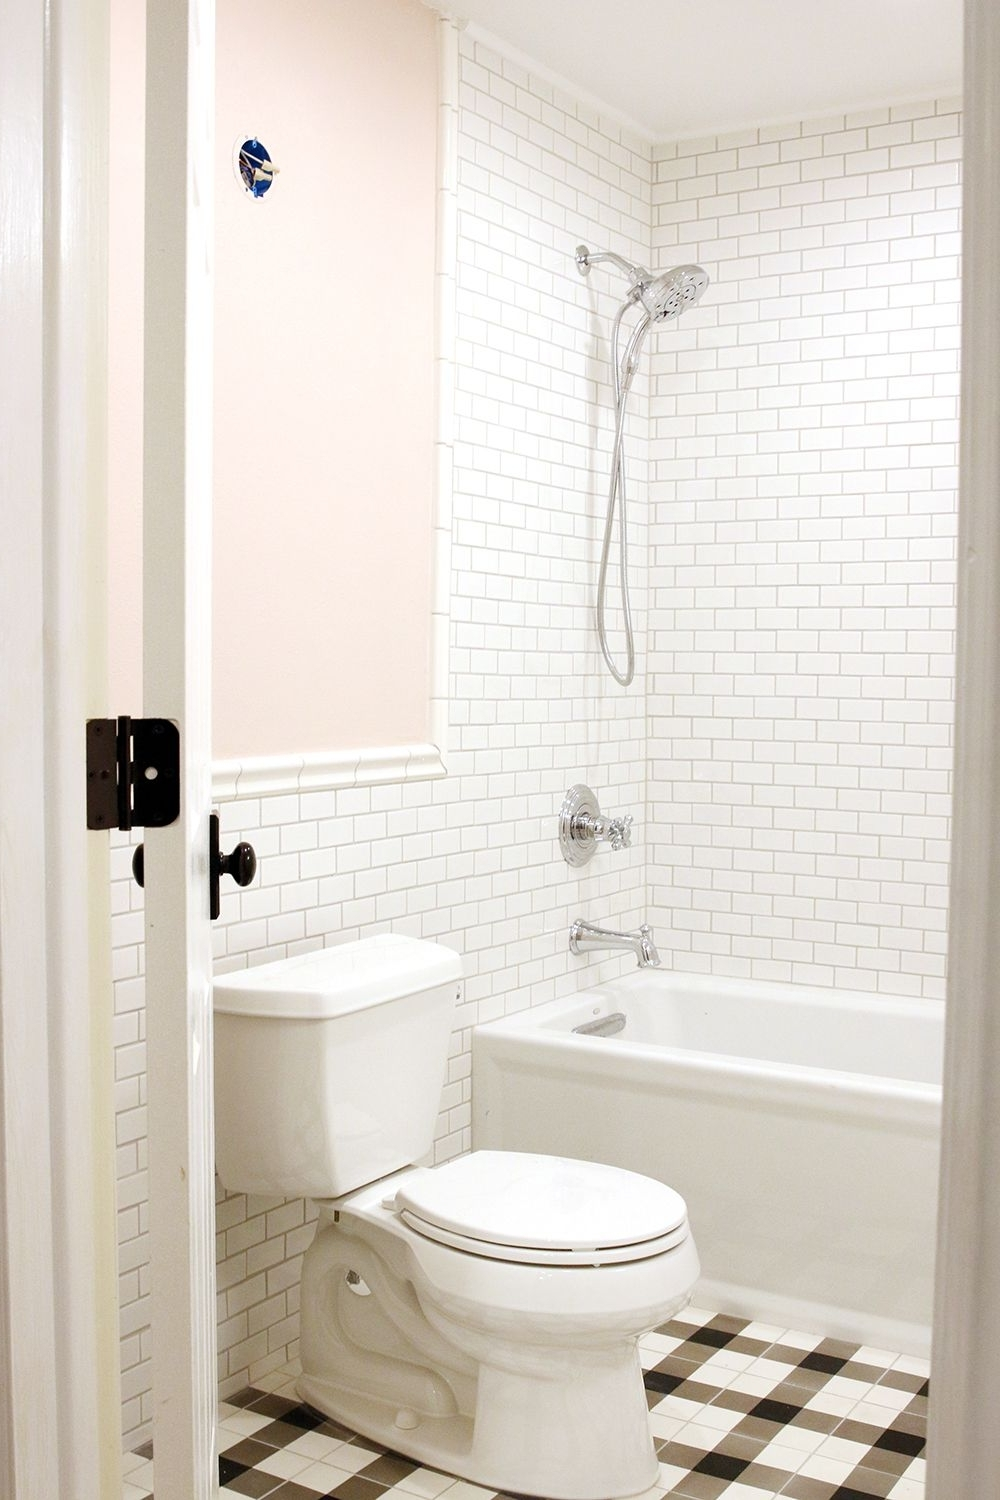 Choosing A Paint Color For Our Small, Windowless Bathroom Small Windowless Bathroom Decorating